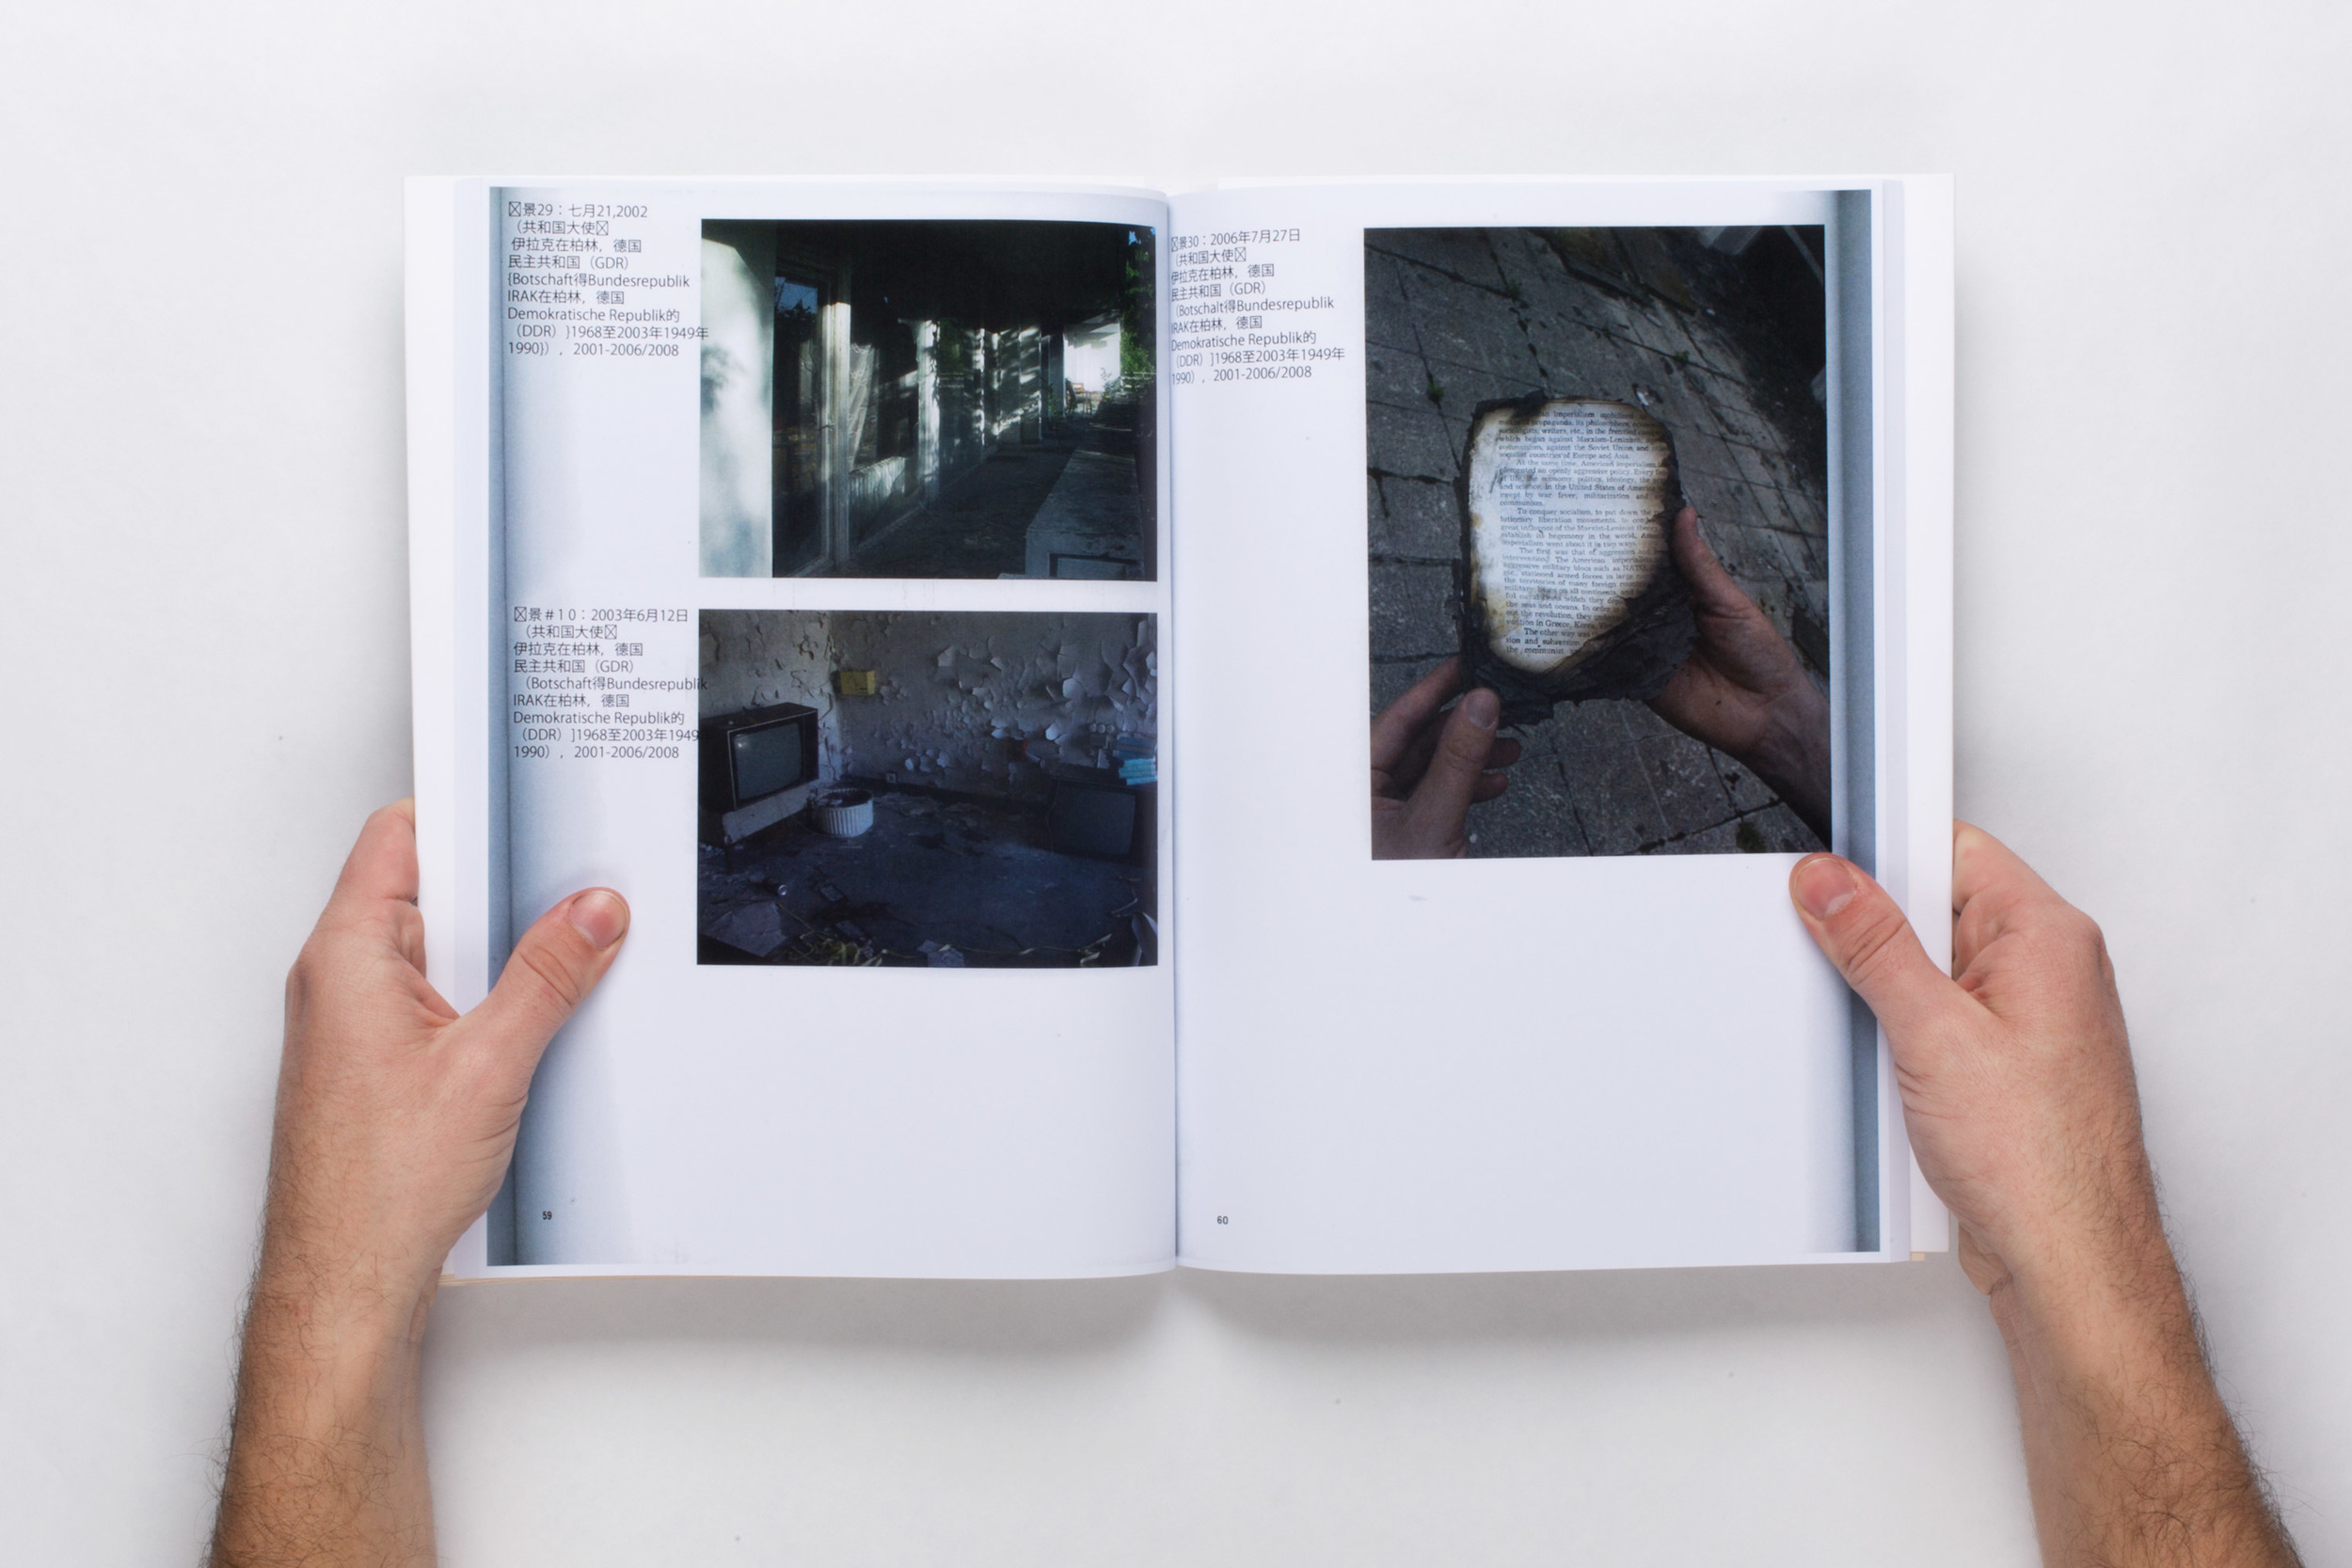 Walead Beshty·NRR。,,,,NN。2001 - , 上海增稅普通友票 ,, September 20, 2012, (Walead Beshty: Selected Correspondences 2001–2010, monograph, Bologna, Italy: Damiani Editore, 123pp. essays by Peter Eleey, Jason E Smith, and Eric Schwab, 2010.) / Walead Beshty Select · NRR. ,,,, NN. 2001 -, The Shanghai VAT Ordinary Friends of votes, September 20, 2012, (Walead Beshty: Selected Correspondences 2001–2010, monograph, Bologna, Italy: Damiani Editore, 123 pp. essays by Peter Eleey, Jason E Smith, and Eric Schwab, 2010.)   2012  Four-color offset prints on coated paper, bound  11 9/16 x 8 1/4 x 3/8 inches each    Chinese replicas of  Selected Correspondences  produced on the occasion of the 2012 Shanghai Biennale. Volume 1 digitally translated in to Chinese and volume 2 digitally translated back to English.